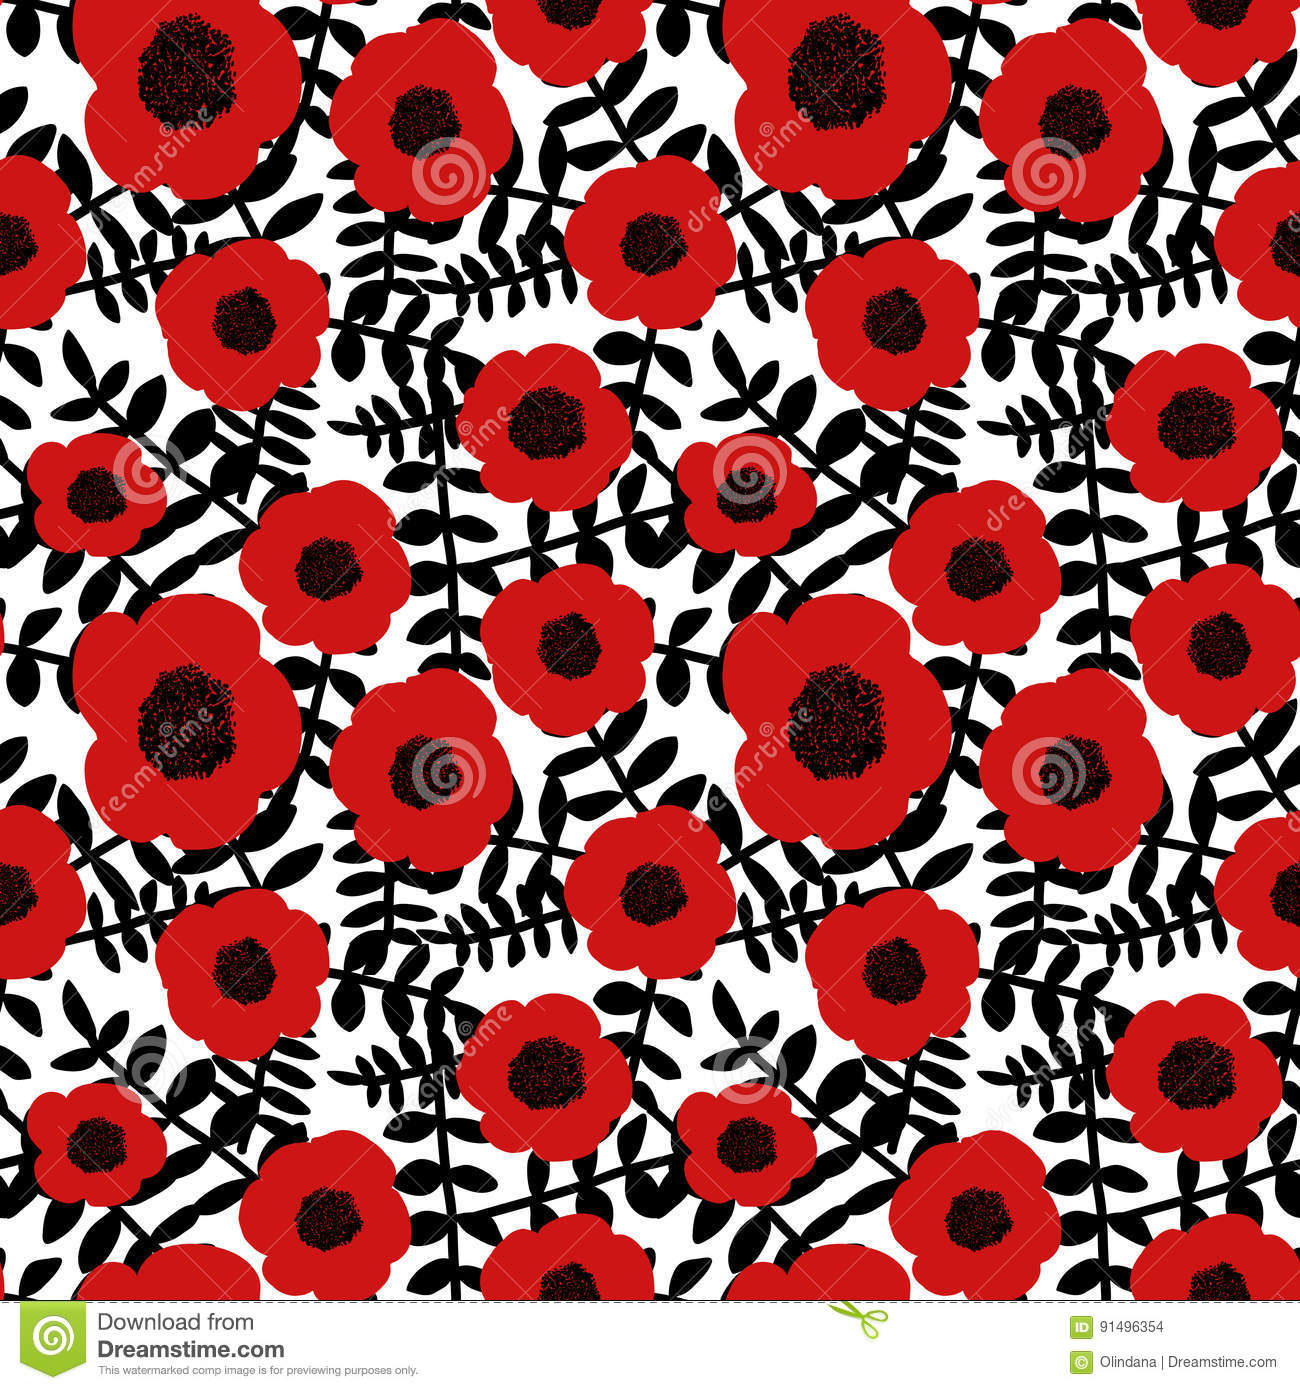 Seamless floral pattern hand drawn abstract red poppy flowers black twigs leaves white background, fabric, wallpaper